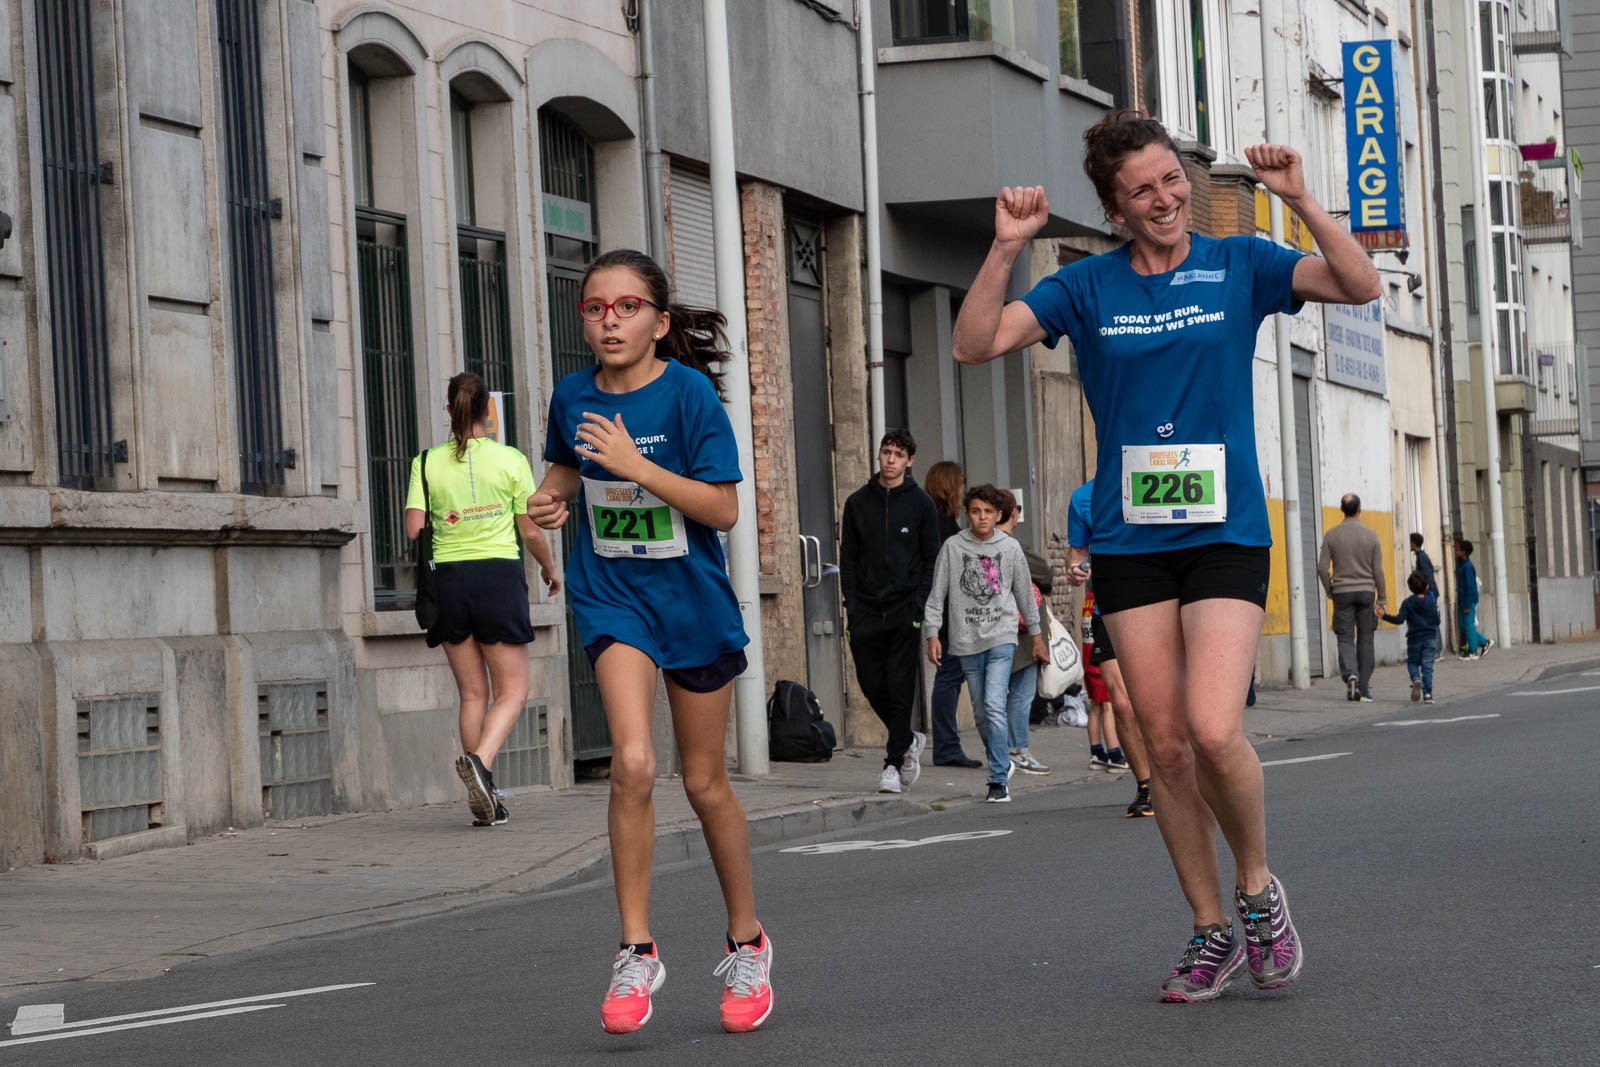 PIC_EVENT_20181020_BRUSSELS-CANAL-RUN_NIKON_010.jpg